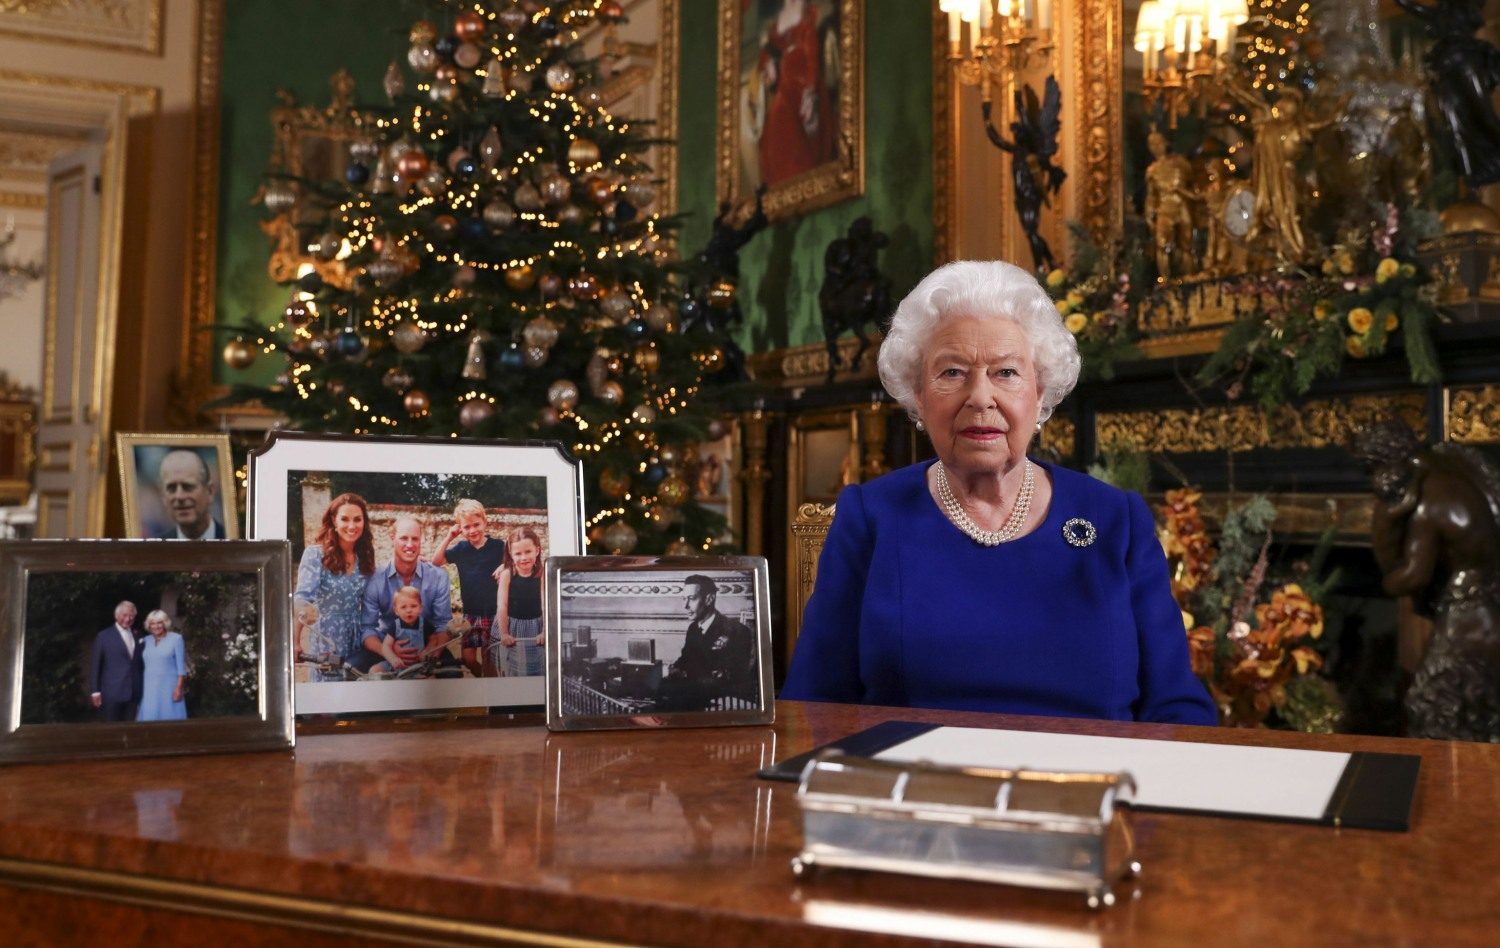 Queen's Christmas broadcast